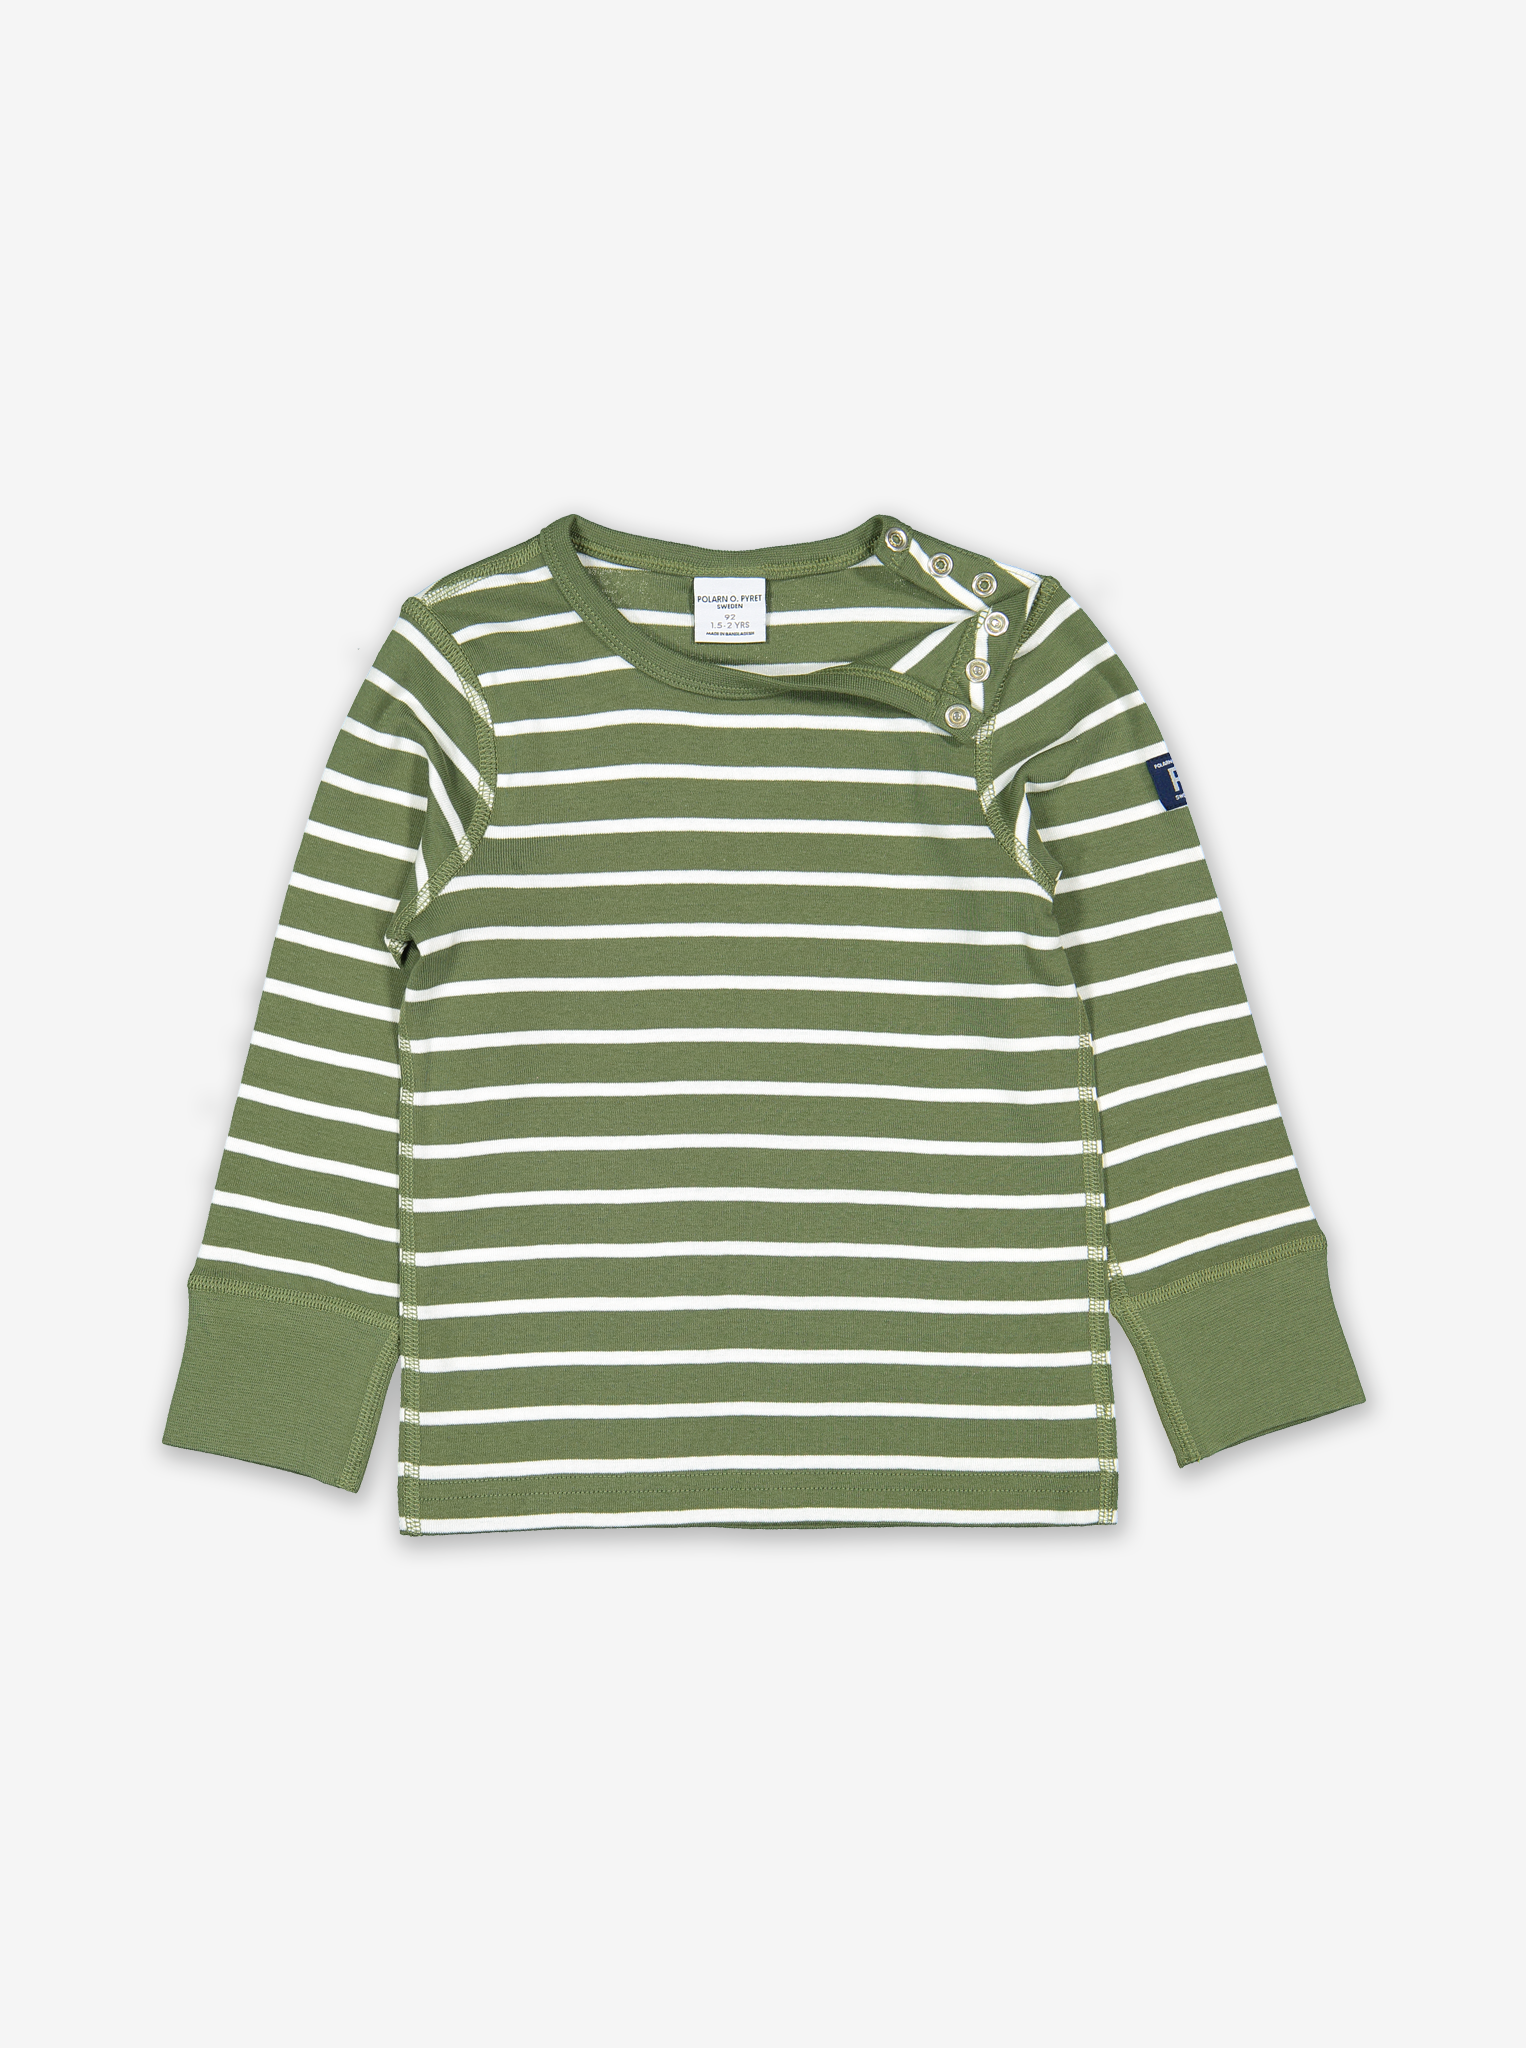 Striped Kids Top-Unisex-1-6y-Green